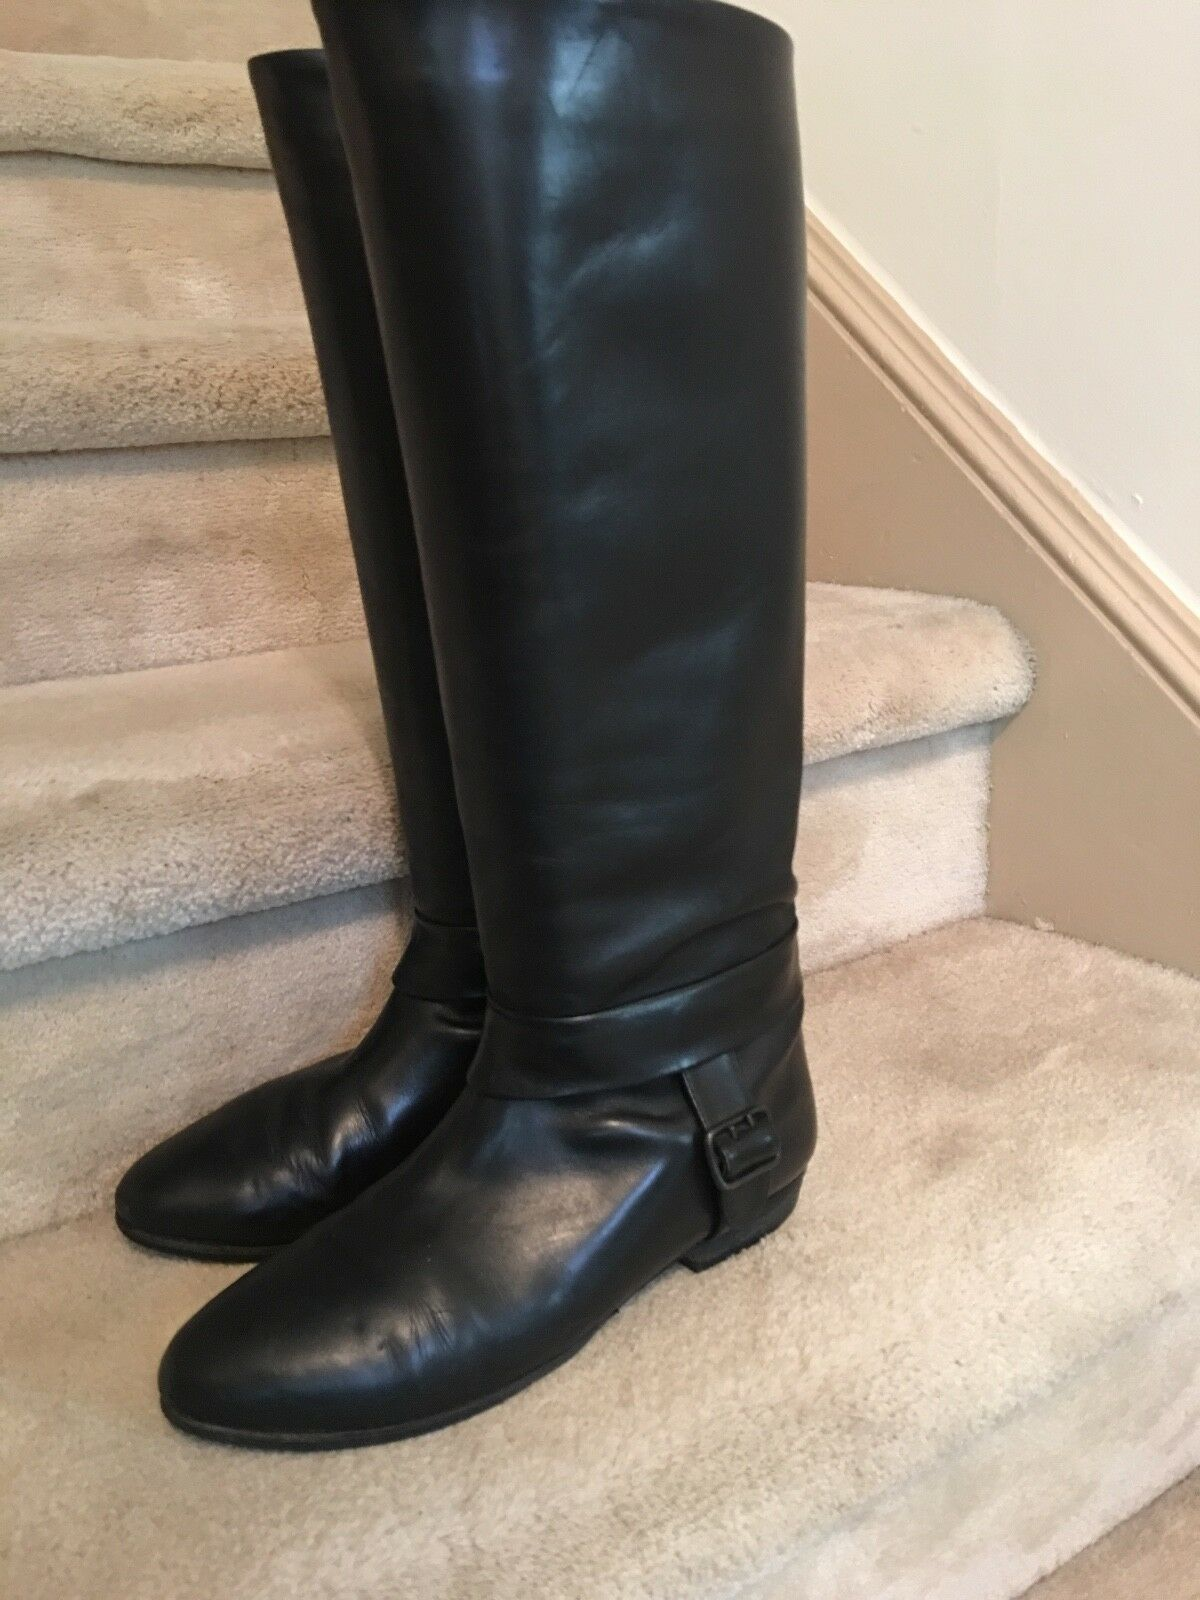 VERY FINE LEATHER & LEATHER LINED CLASSIC WOMEN'S BOOTS WITH SIDE BUCKLE